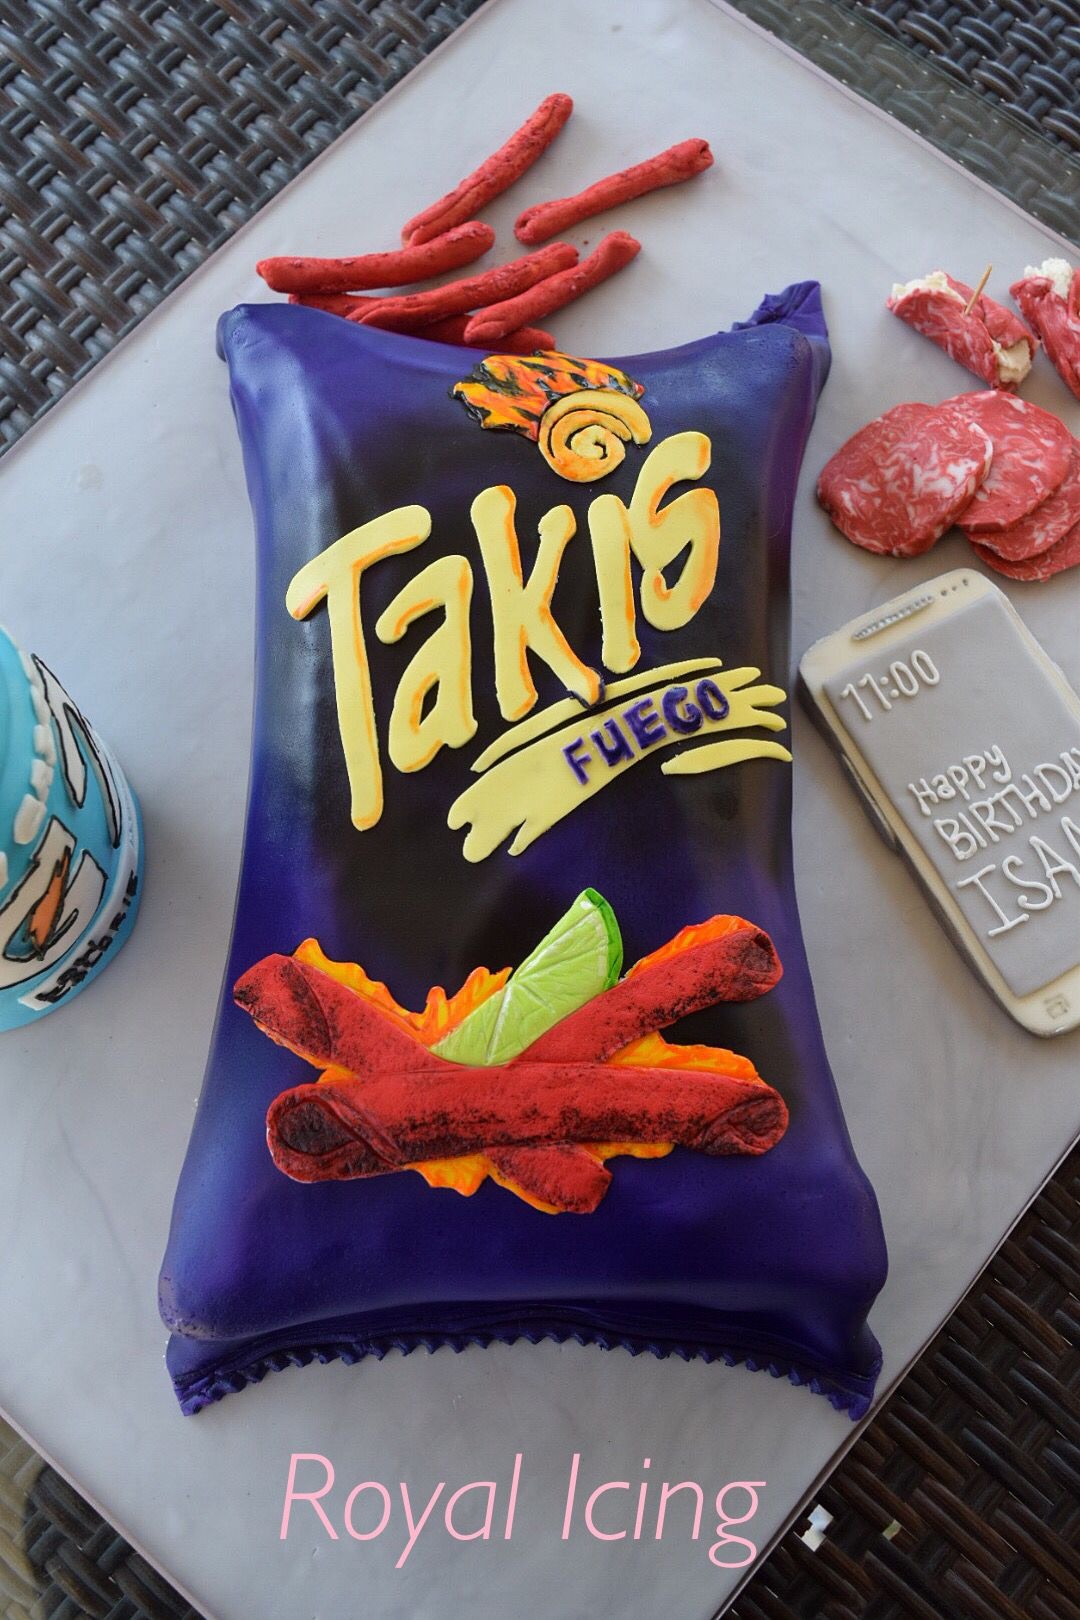 Takis Chips Cake Chips How Sweet Eats Fun Desserts